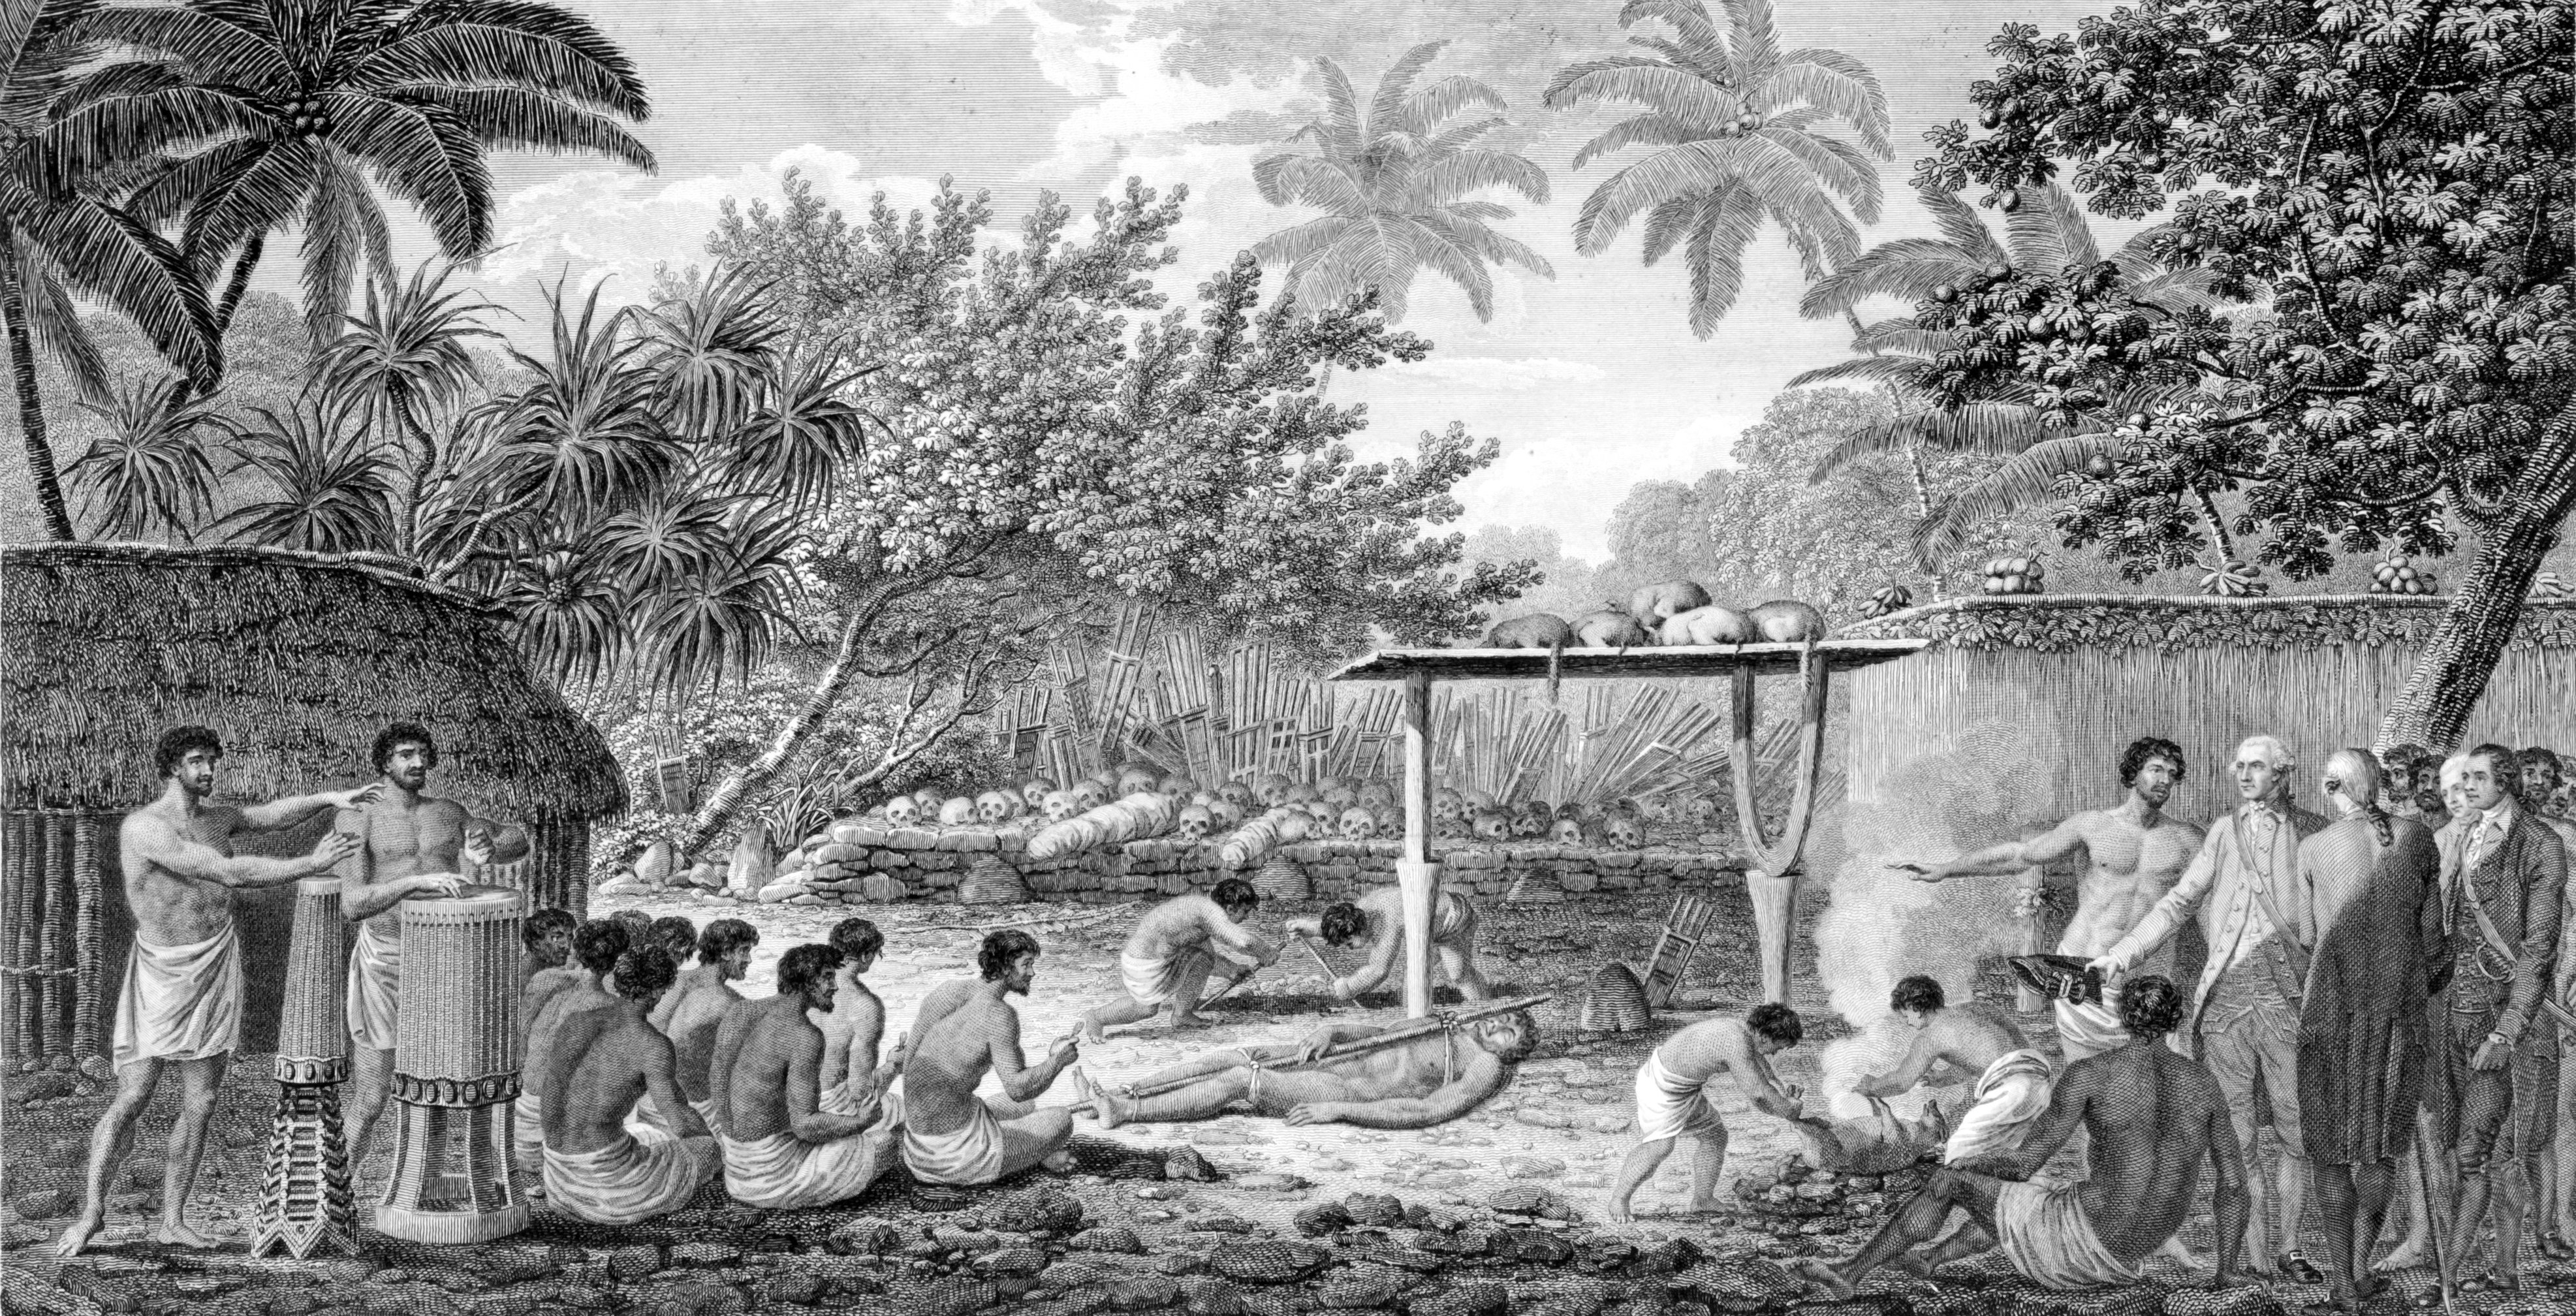 James Cook, English navigator, witnessing human sacrifice in Taihiti (Otaheite) c. 1773.jpg